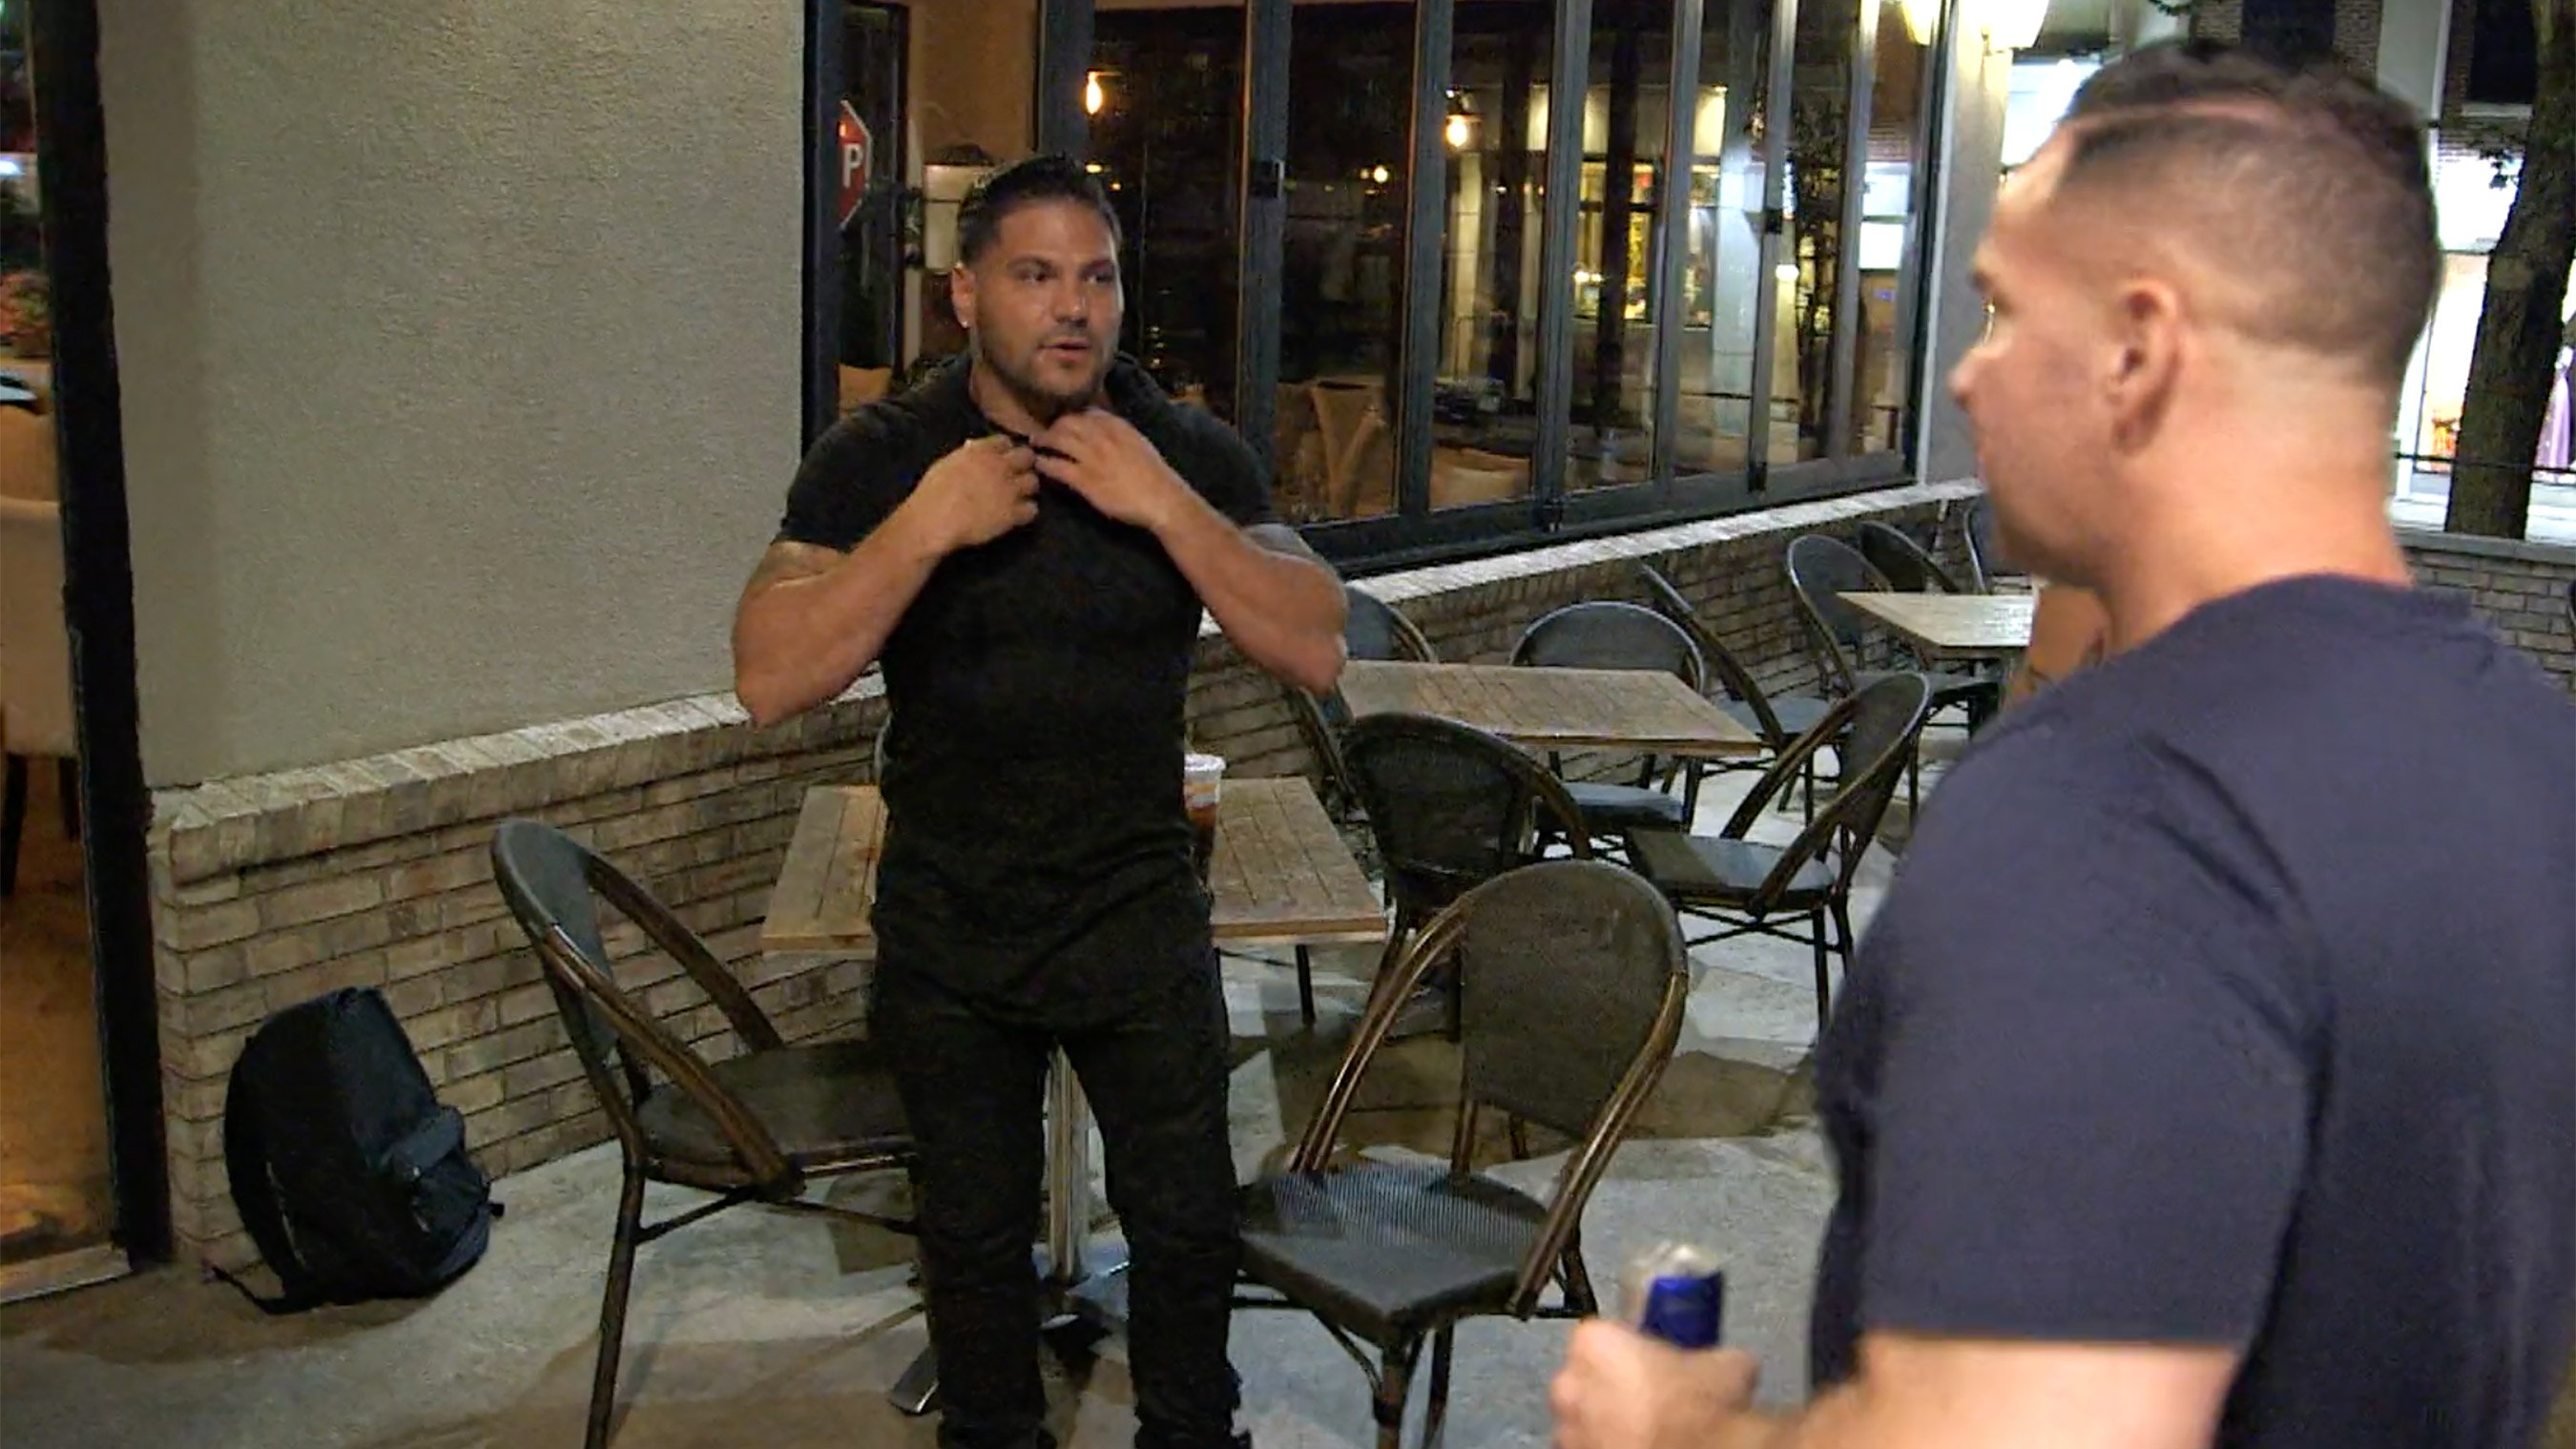 Jersey Shore's Ronnie Ortiz-Magro Narrowly Avoids a Bar Fight: 'I'll F—ing Drop You, Bro'